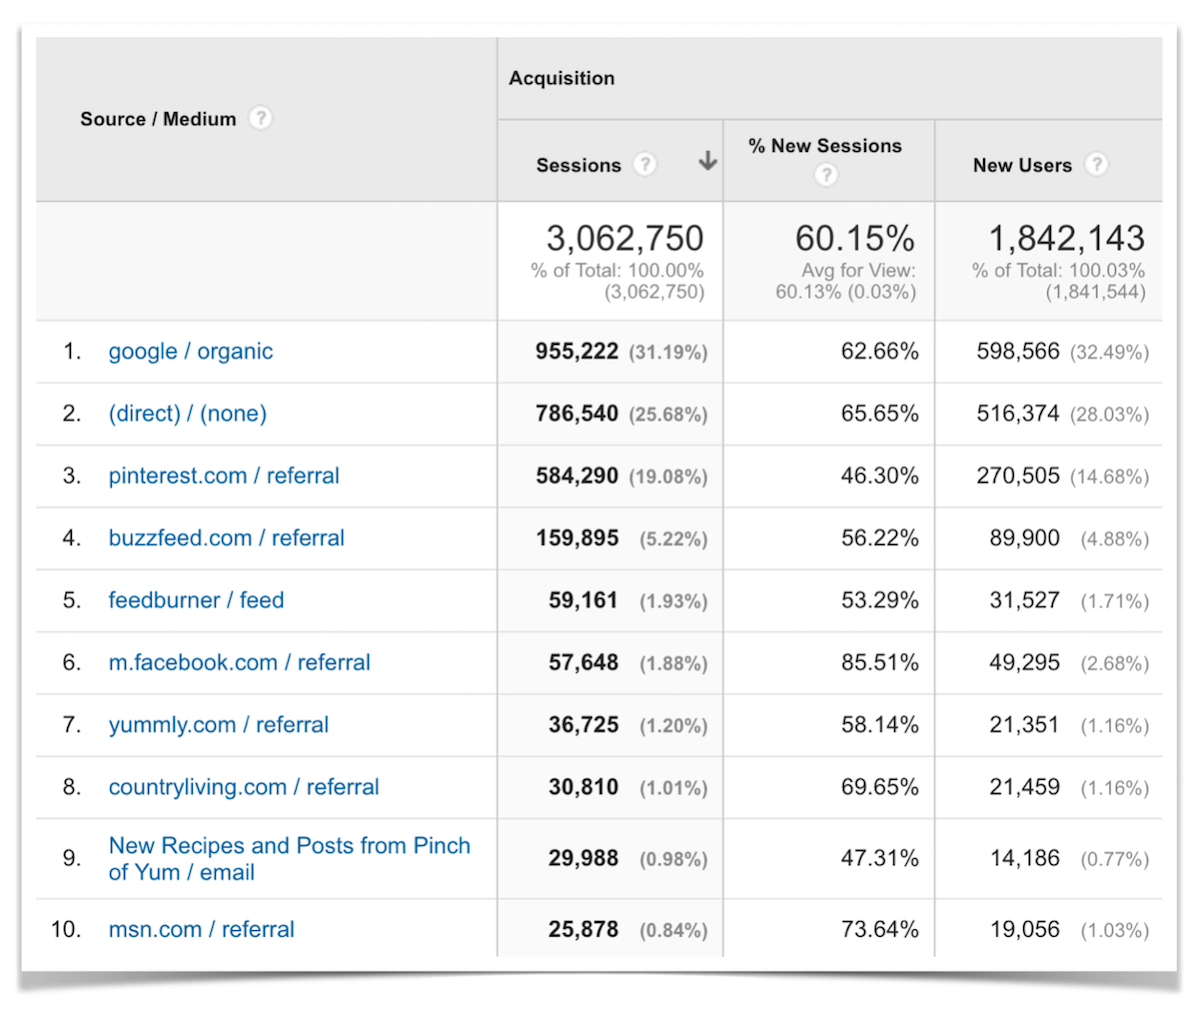 Top Ten Traffic Sources for April 2016